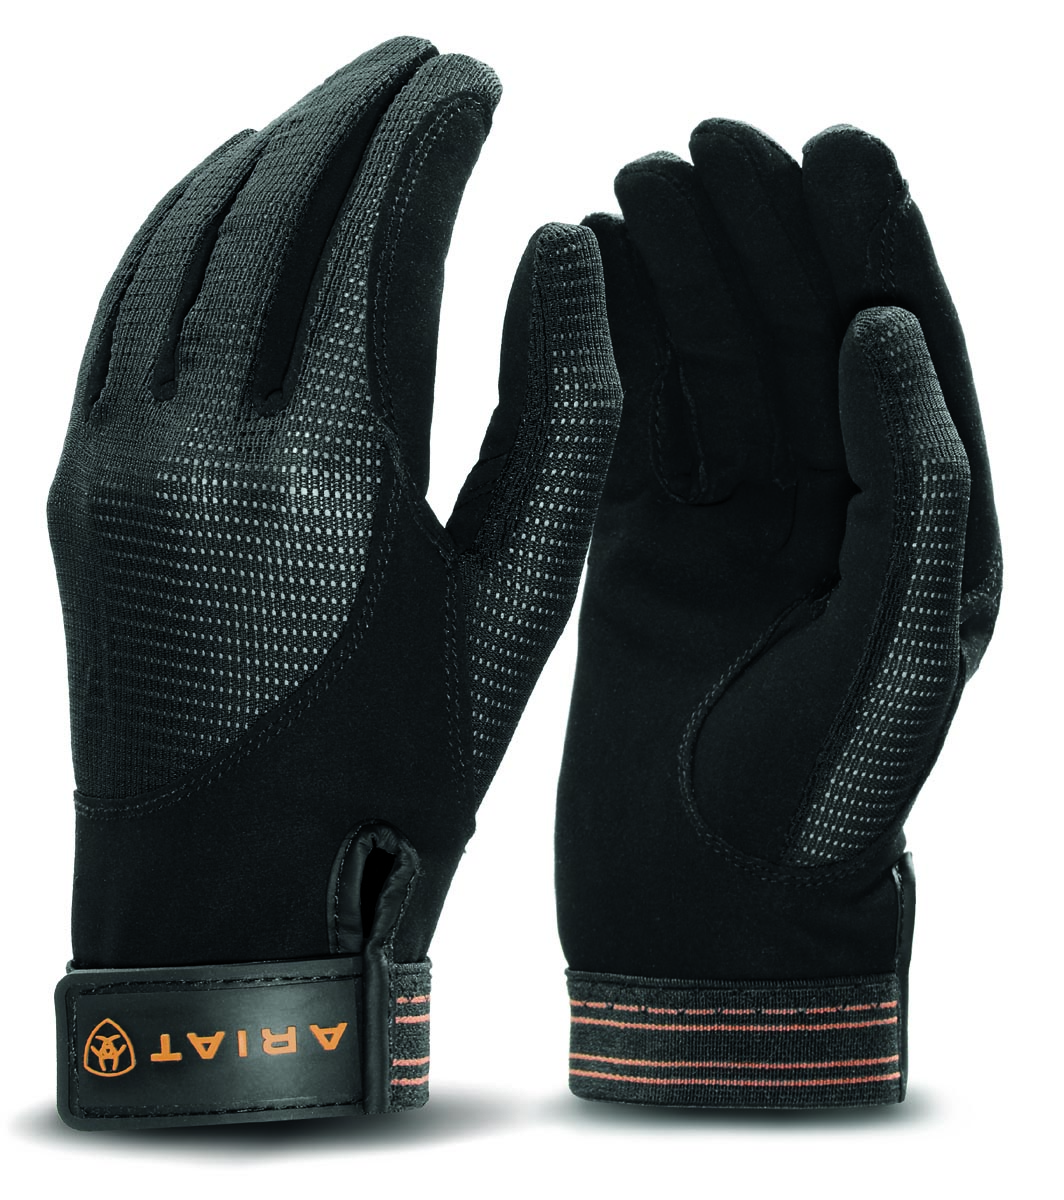 ARIAT Air Grip Glove